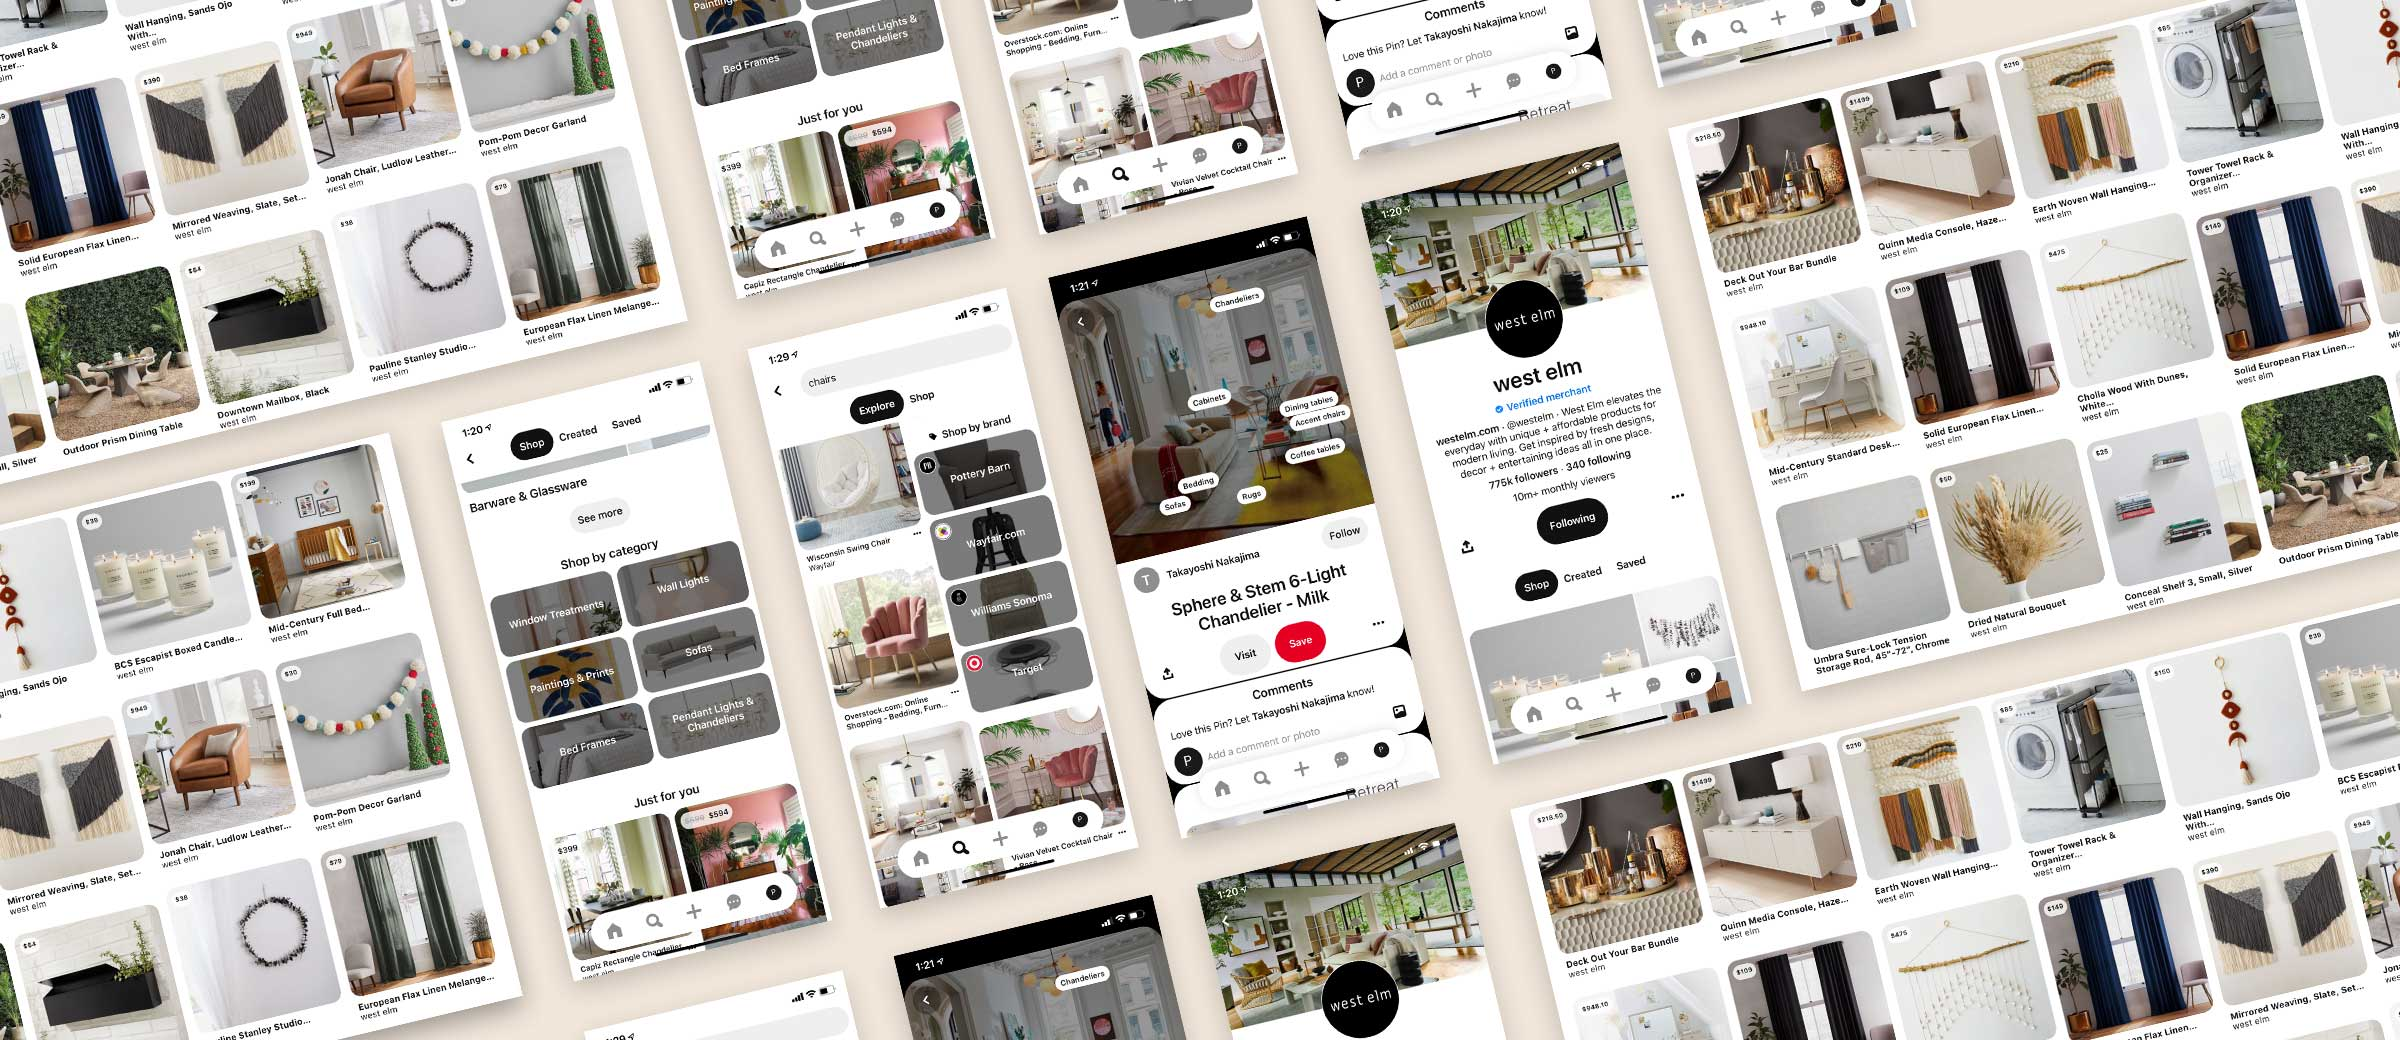 How Retailers Can Use Pinterest Shops to Drive Sales, by payton-rodewald